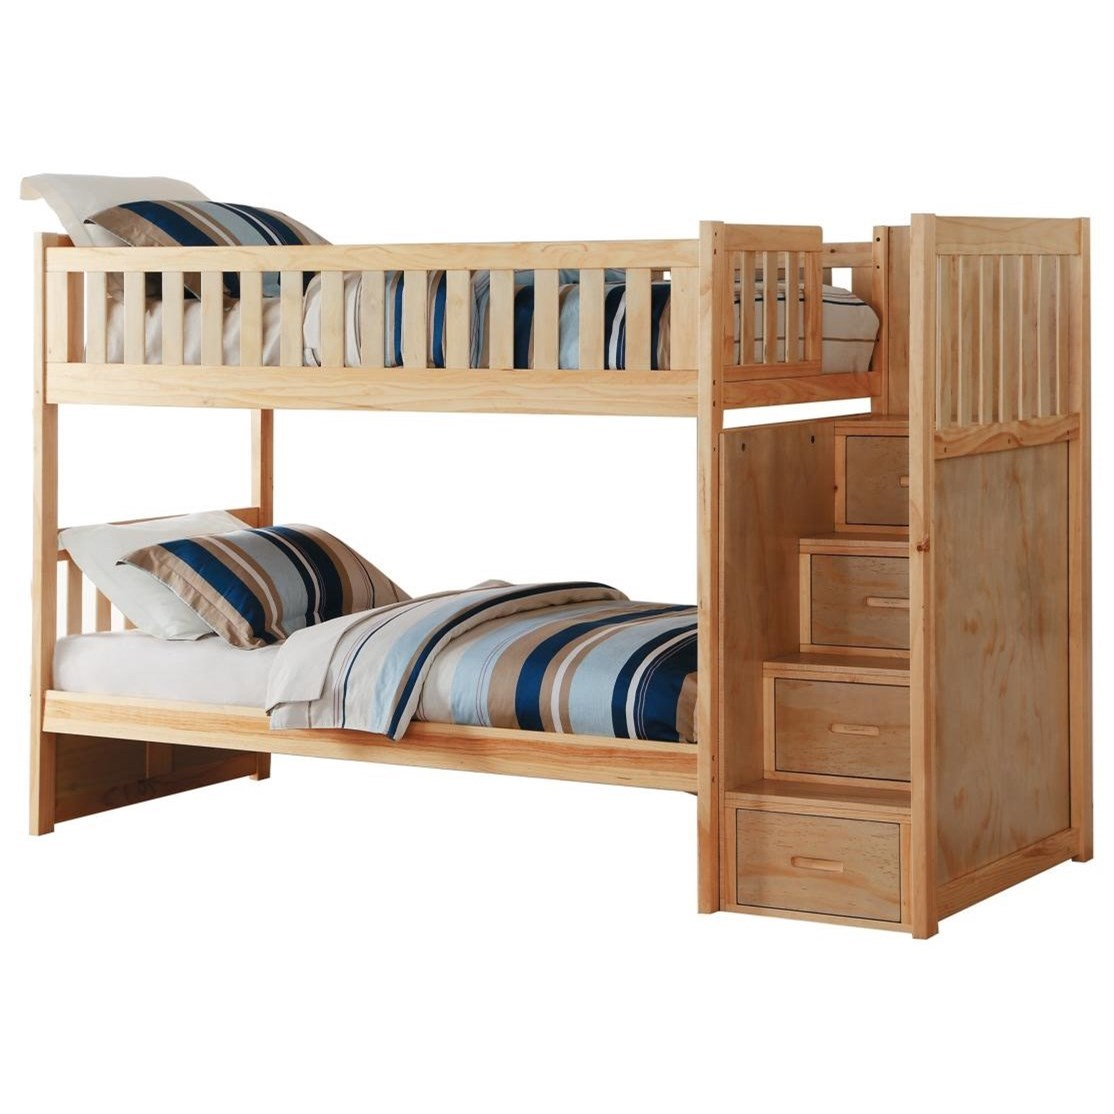 Natural Twin Over Twin Bunk Bed w/ Stair Storage by Home Style at Walker's Furniture